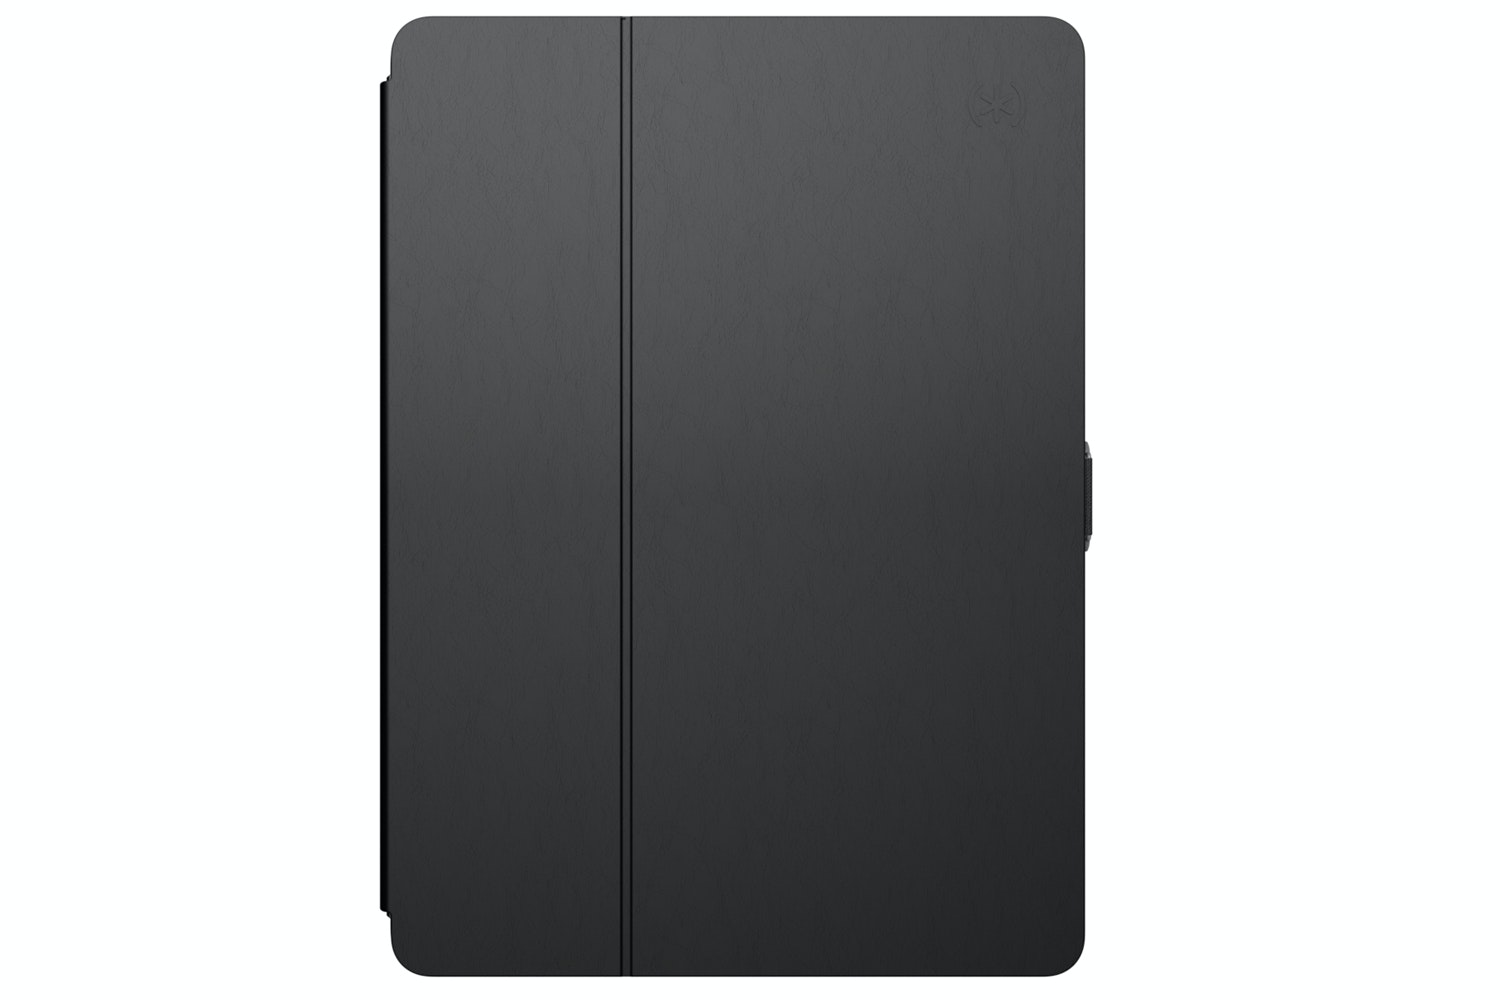 "Speck Balance Folio Leather 9.7"" iPad Case 